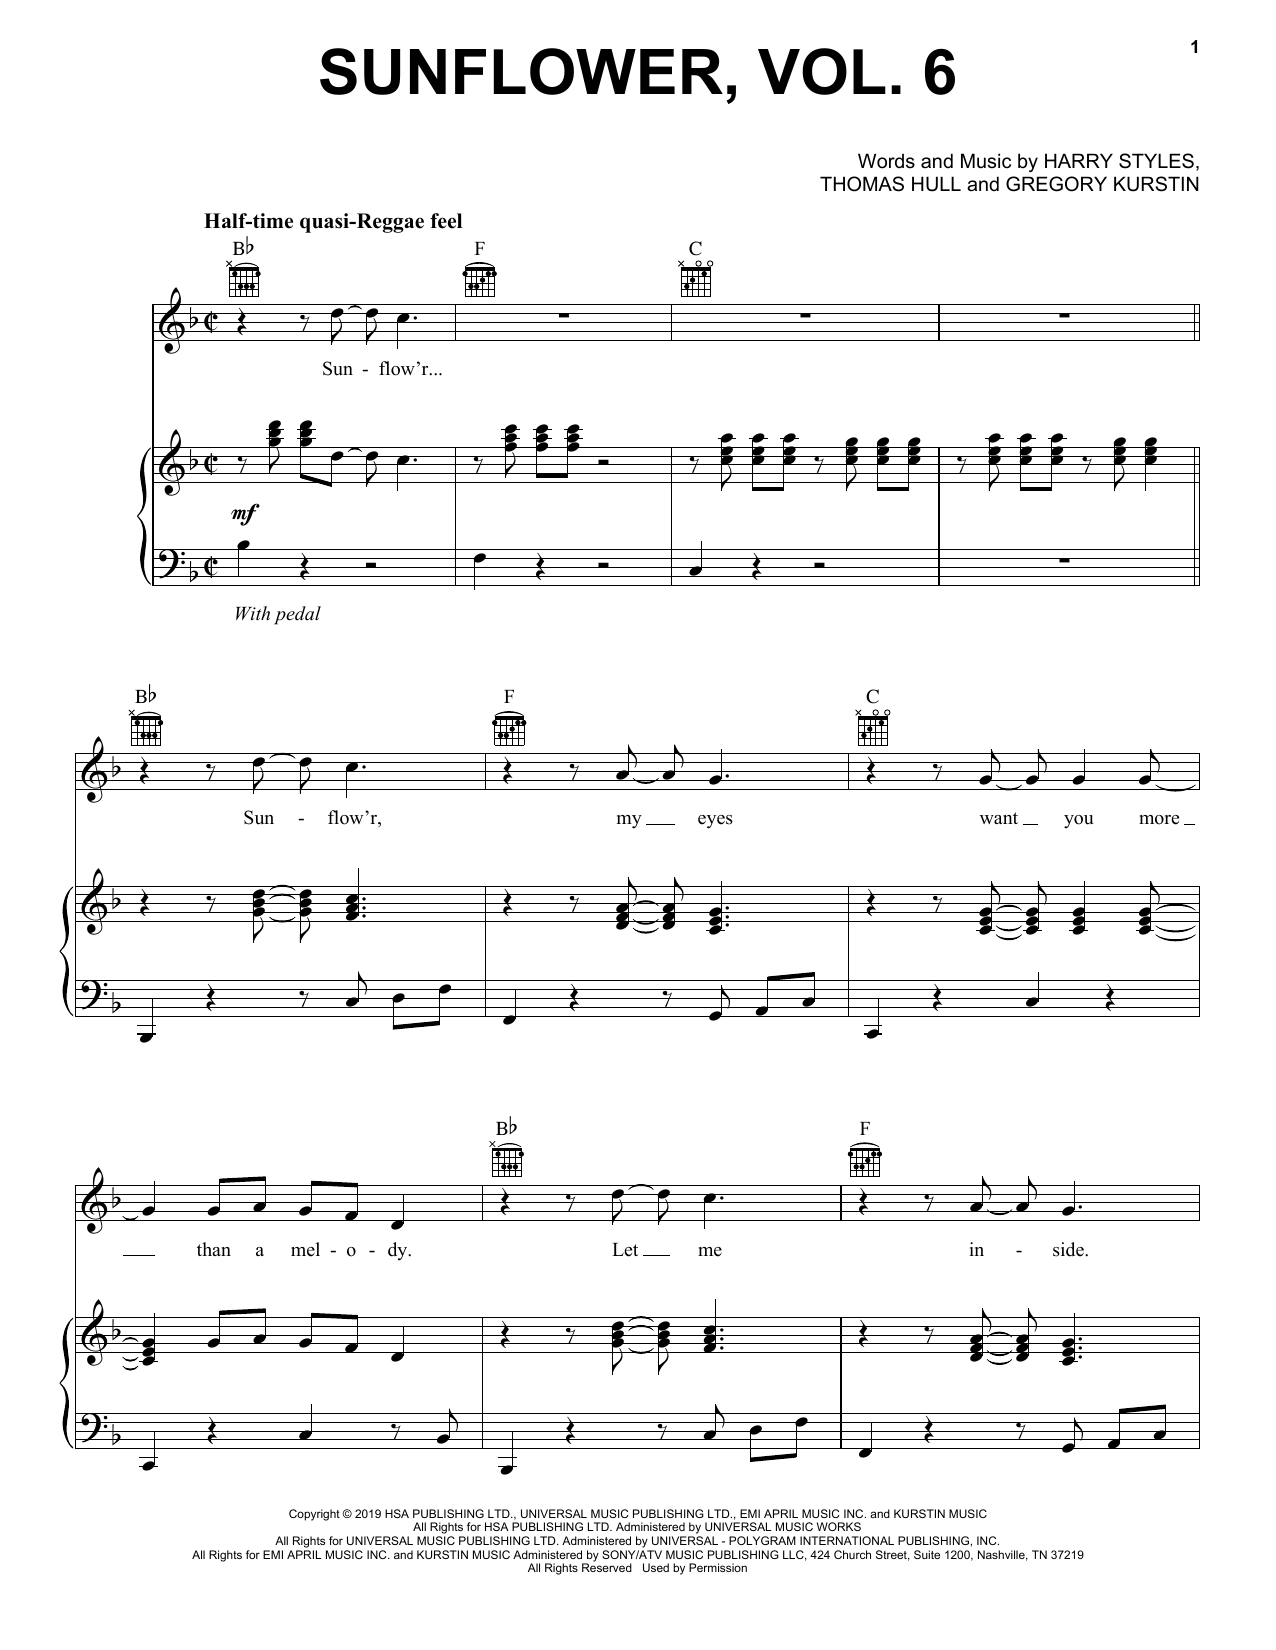 Harry Styles Sunflower, Vol. 6 sheet music notes and chords